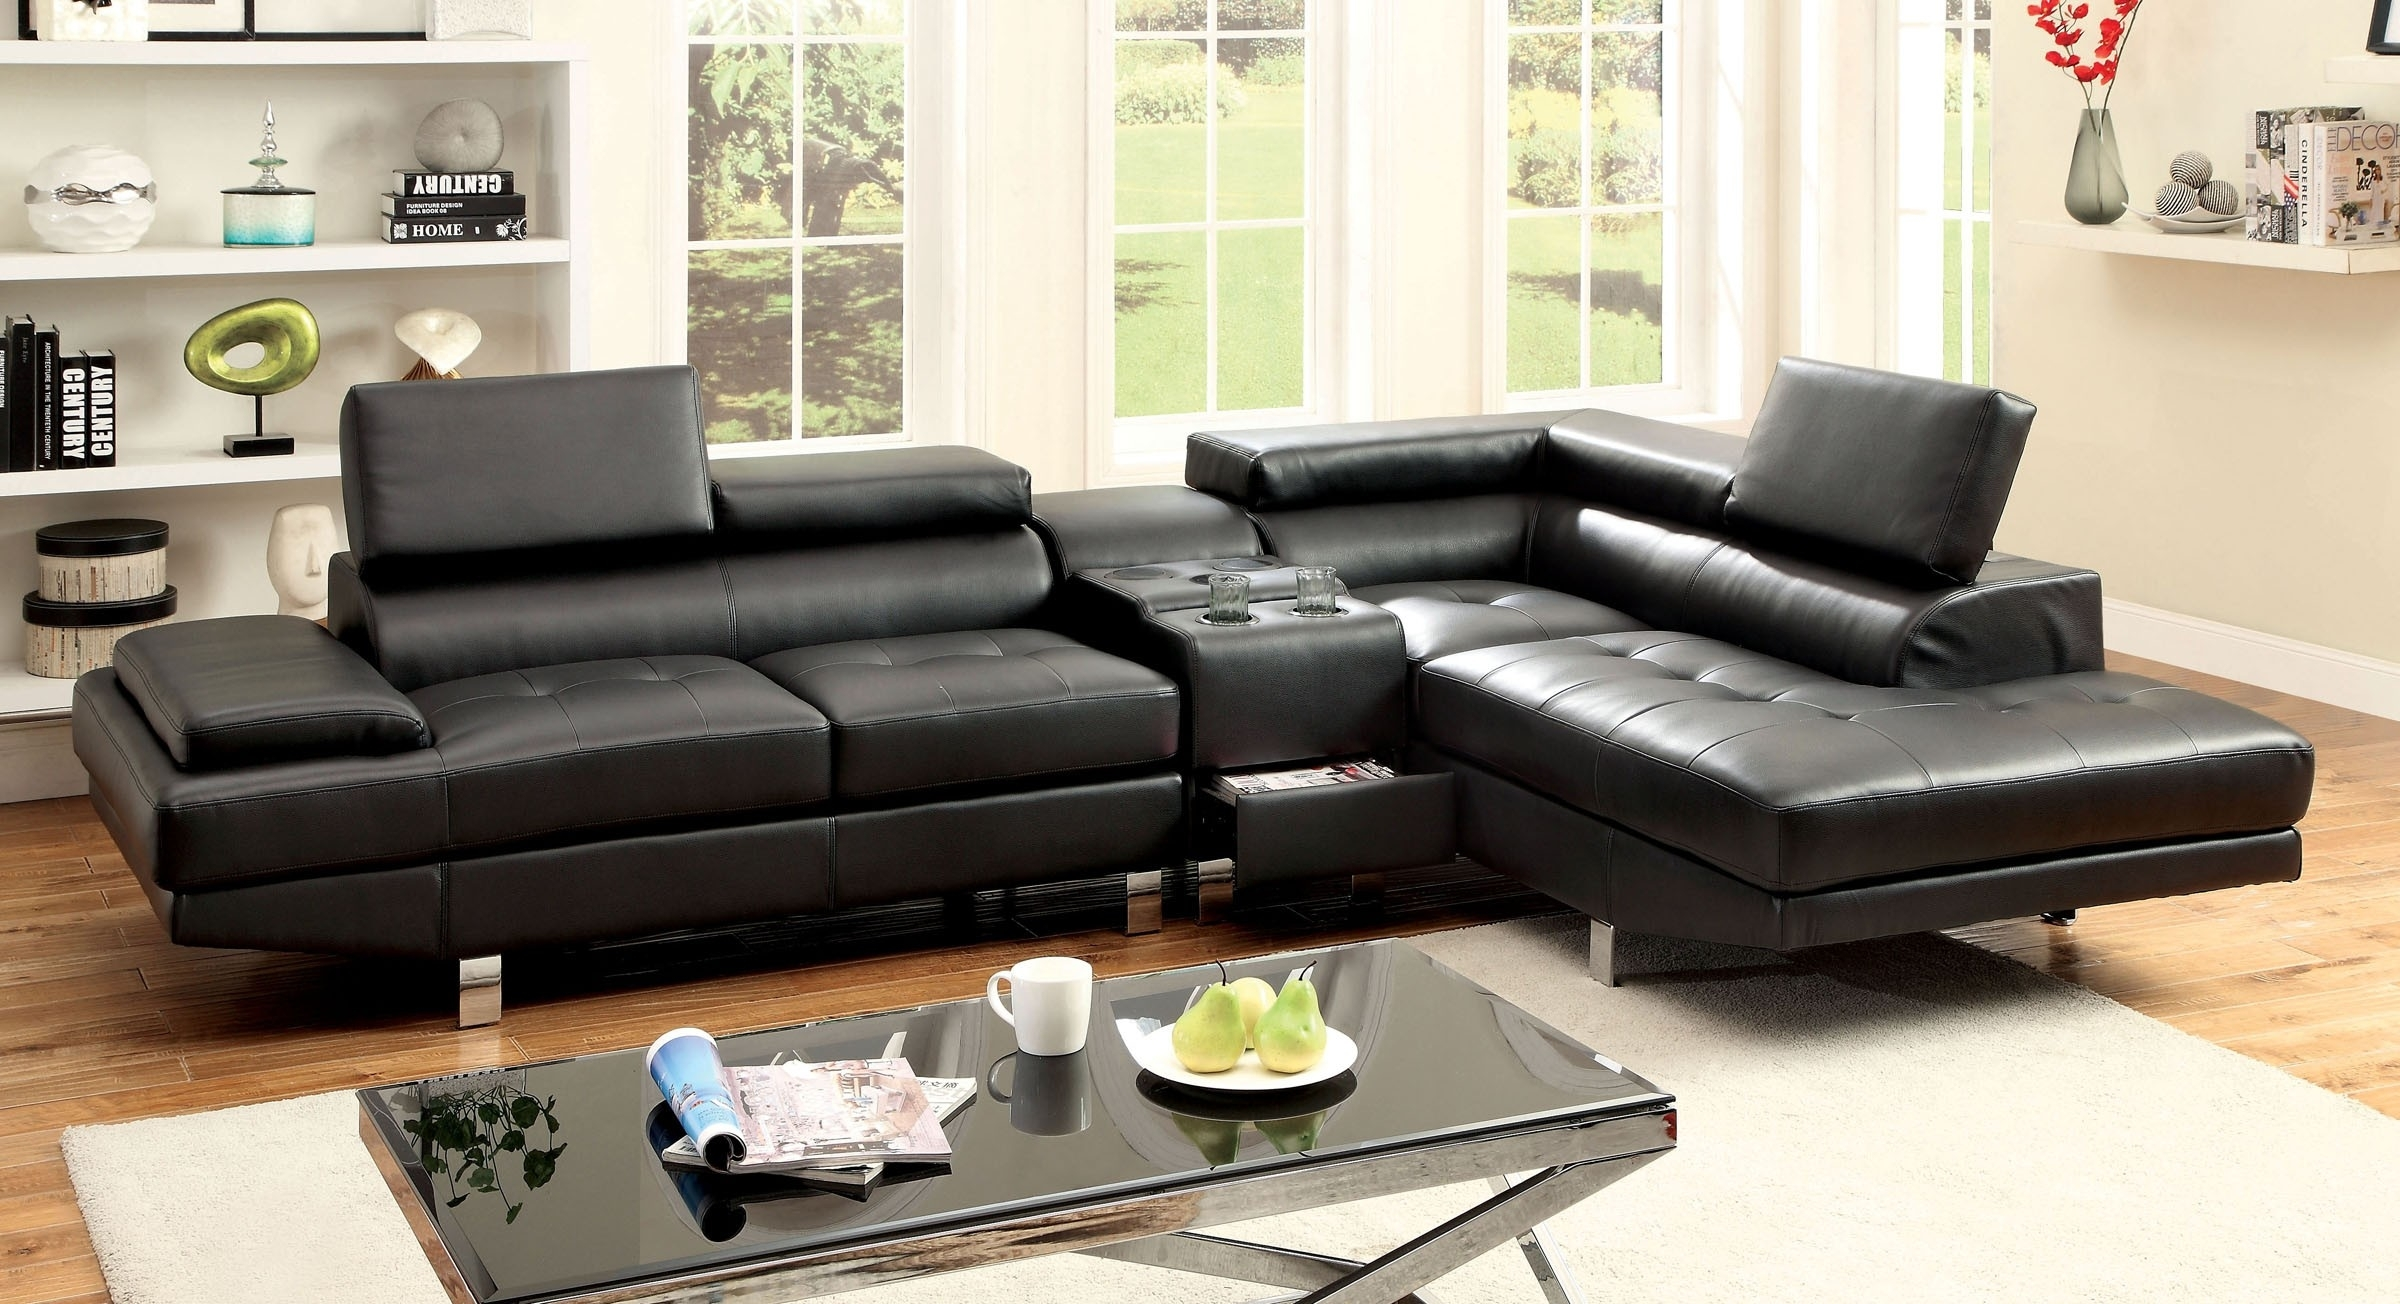 Sectional Sofa W/ Speaker Console (Cm6833Bk ) | Bb's Furniture Store Intended For Sectional Sofas With Consoles (Image 8 of 10)